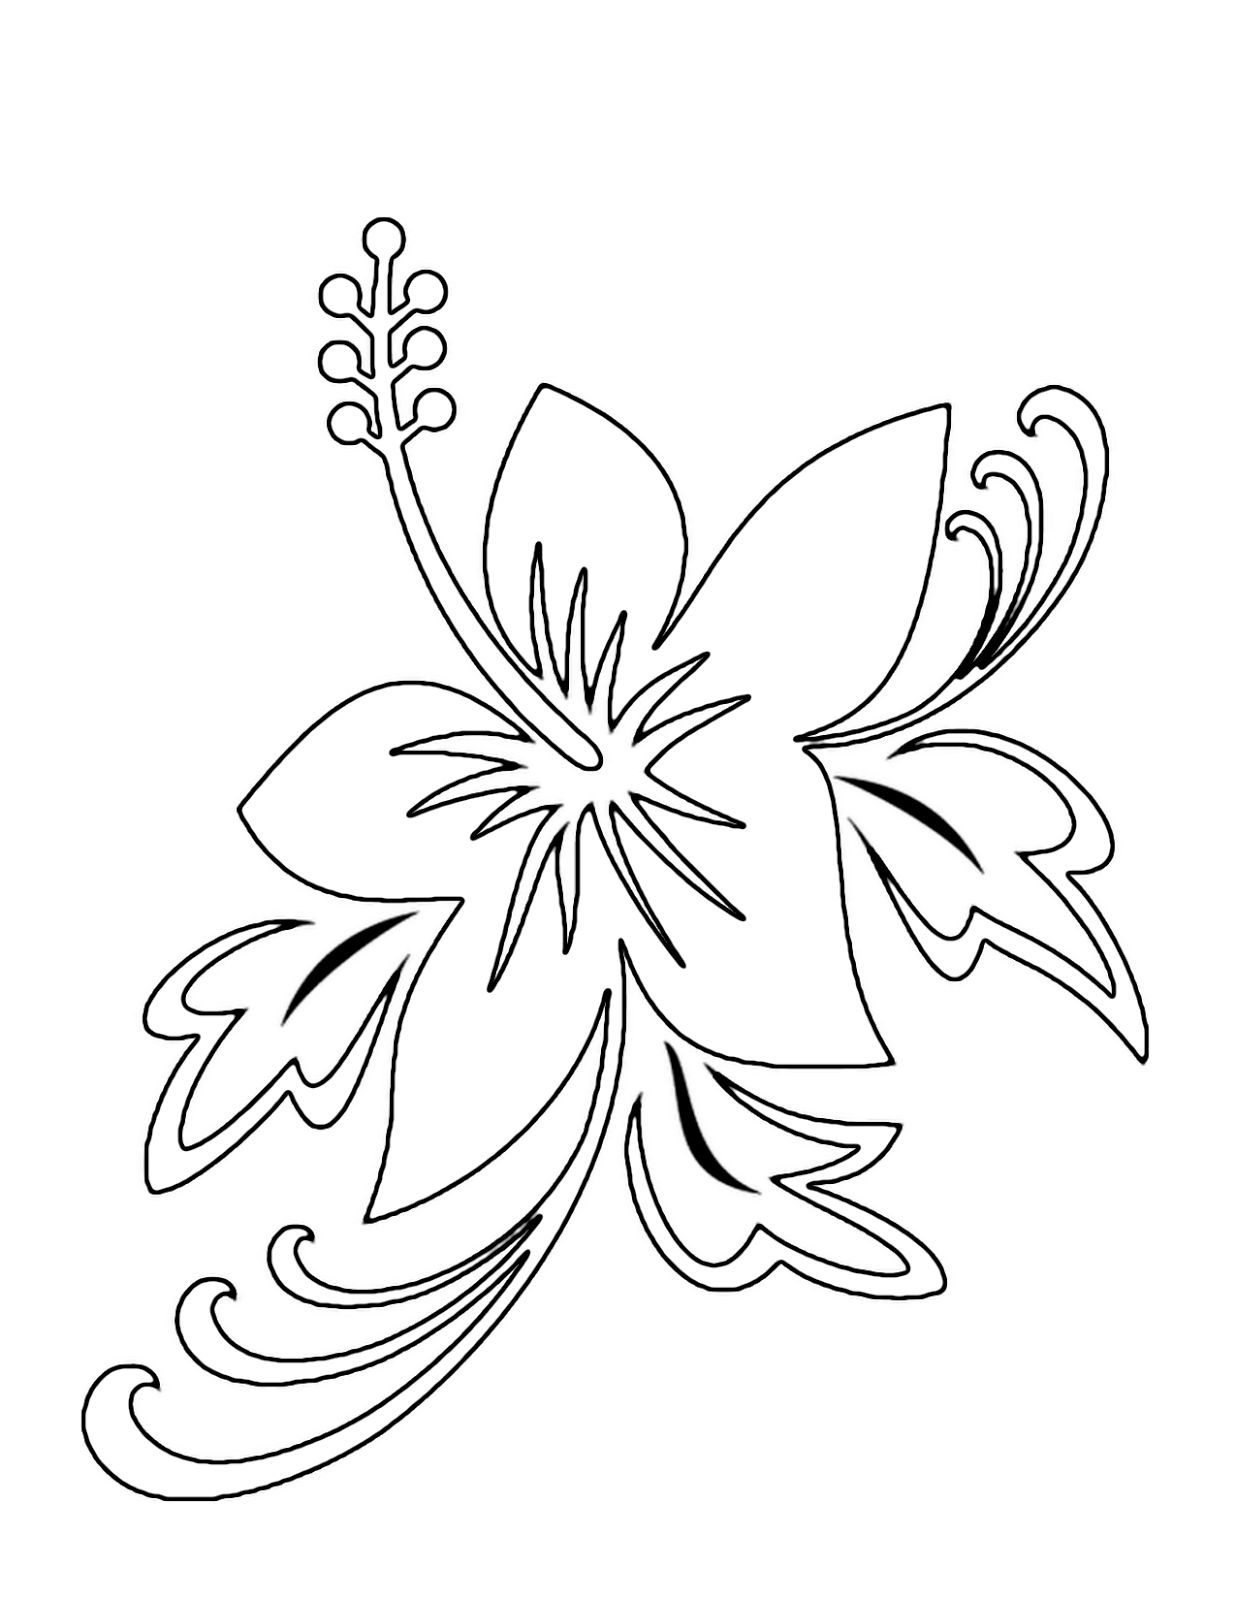 coloring image of a flower 7 best images of printable tropical flowers free coloring a flower image of